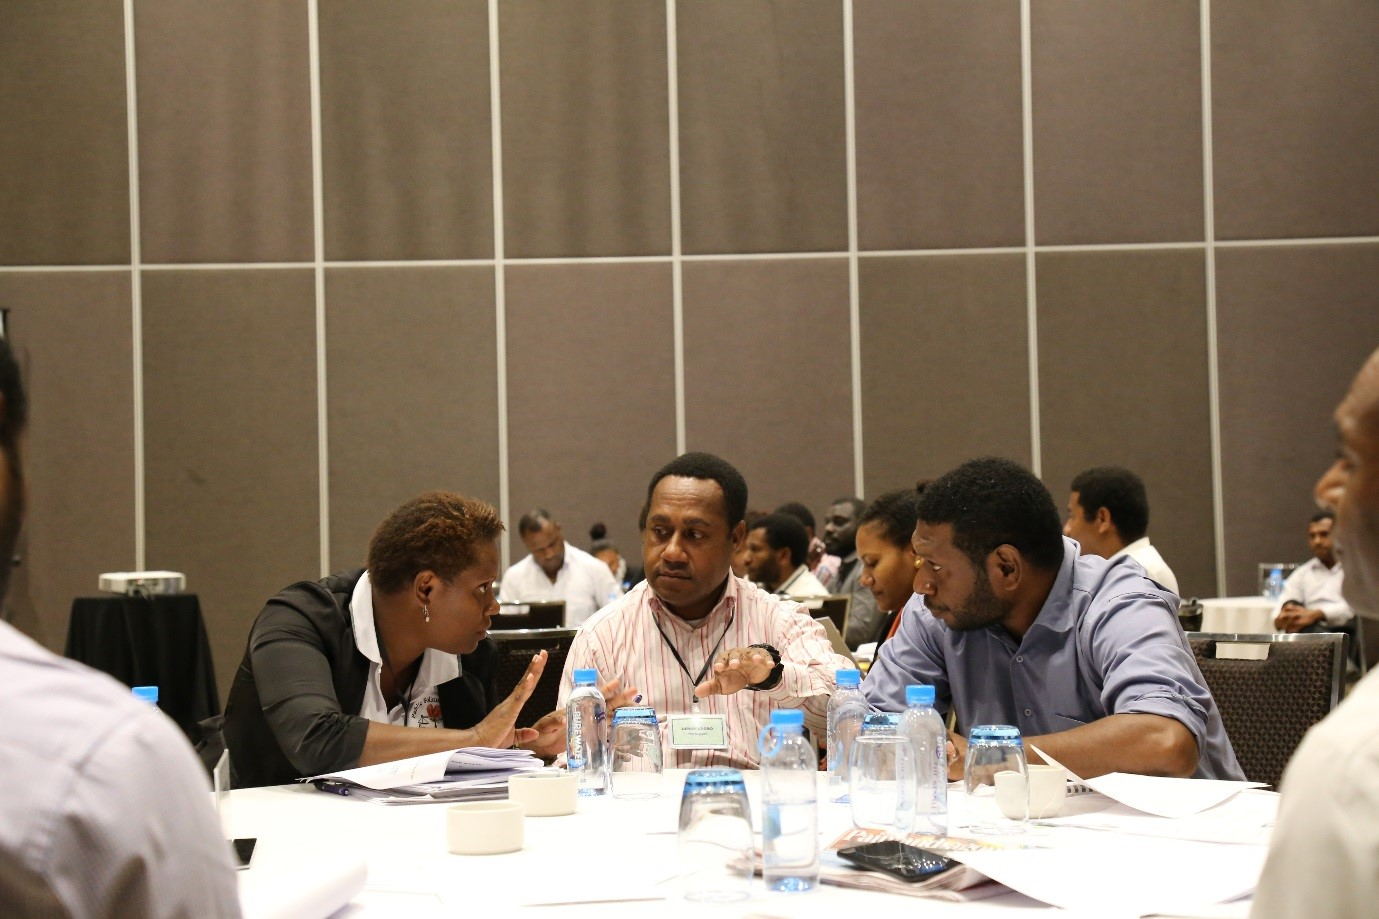 Court advocacy skills of lawyers strengthened through training.